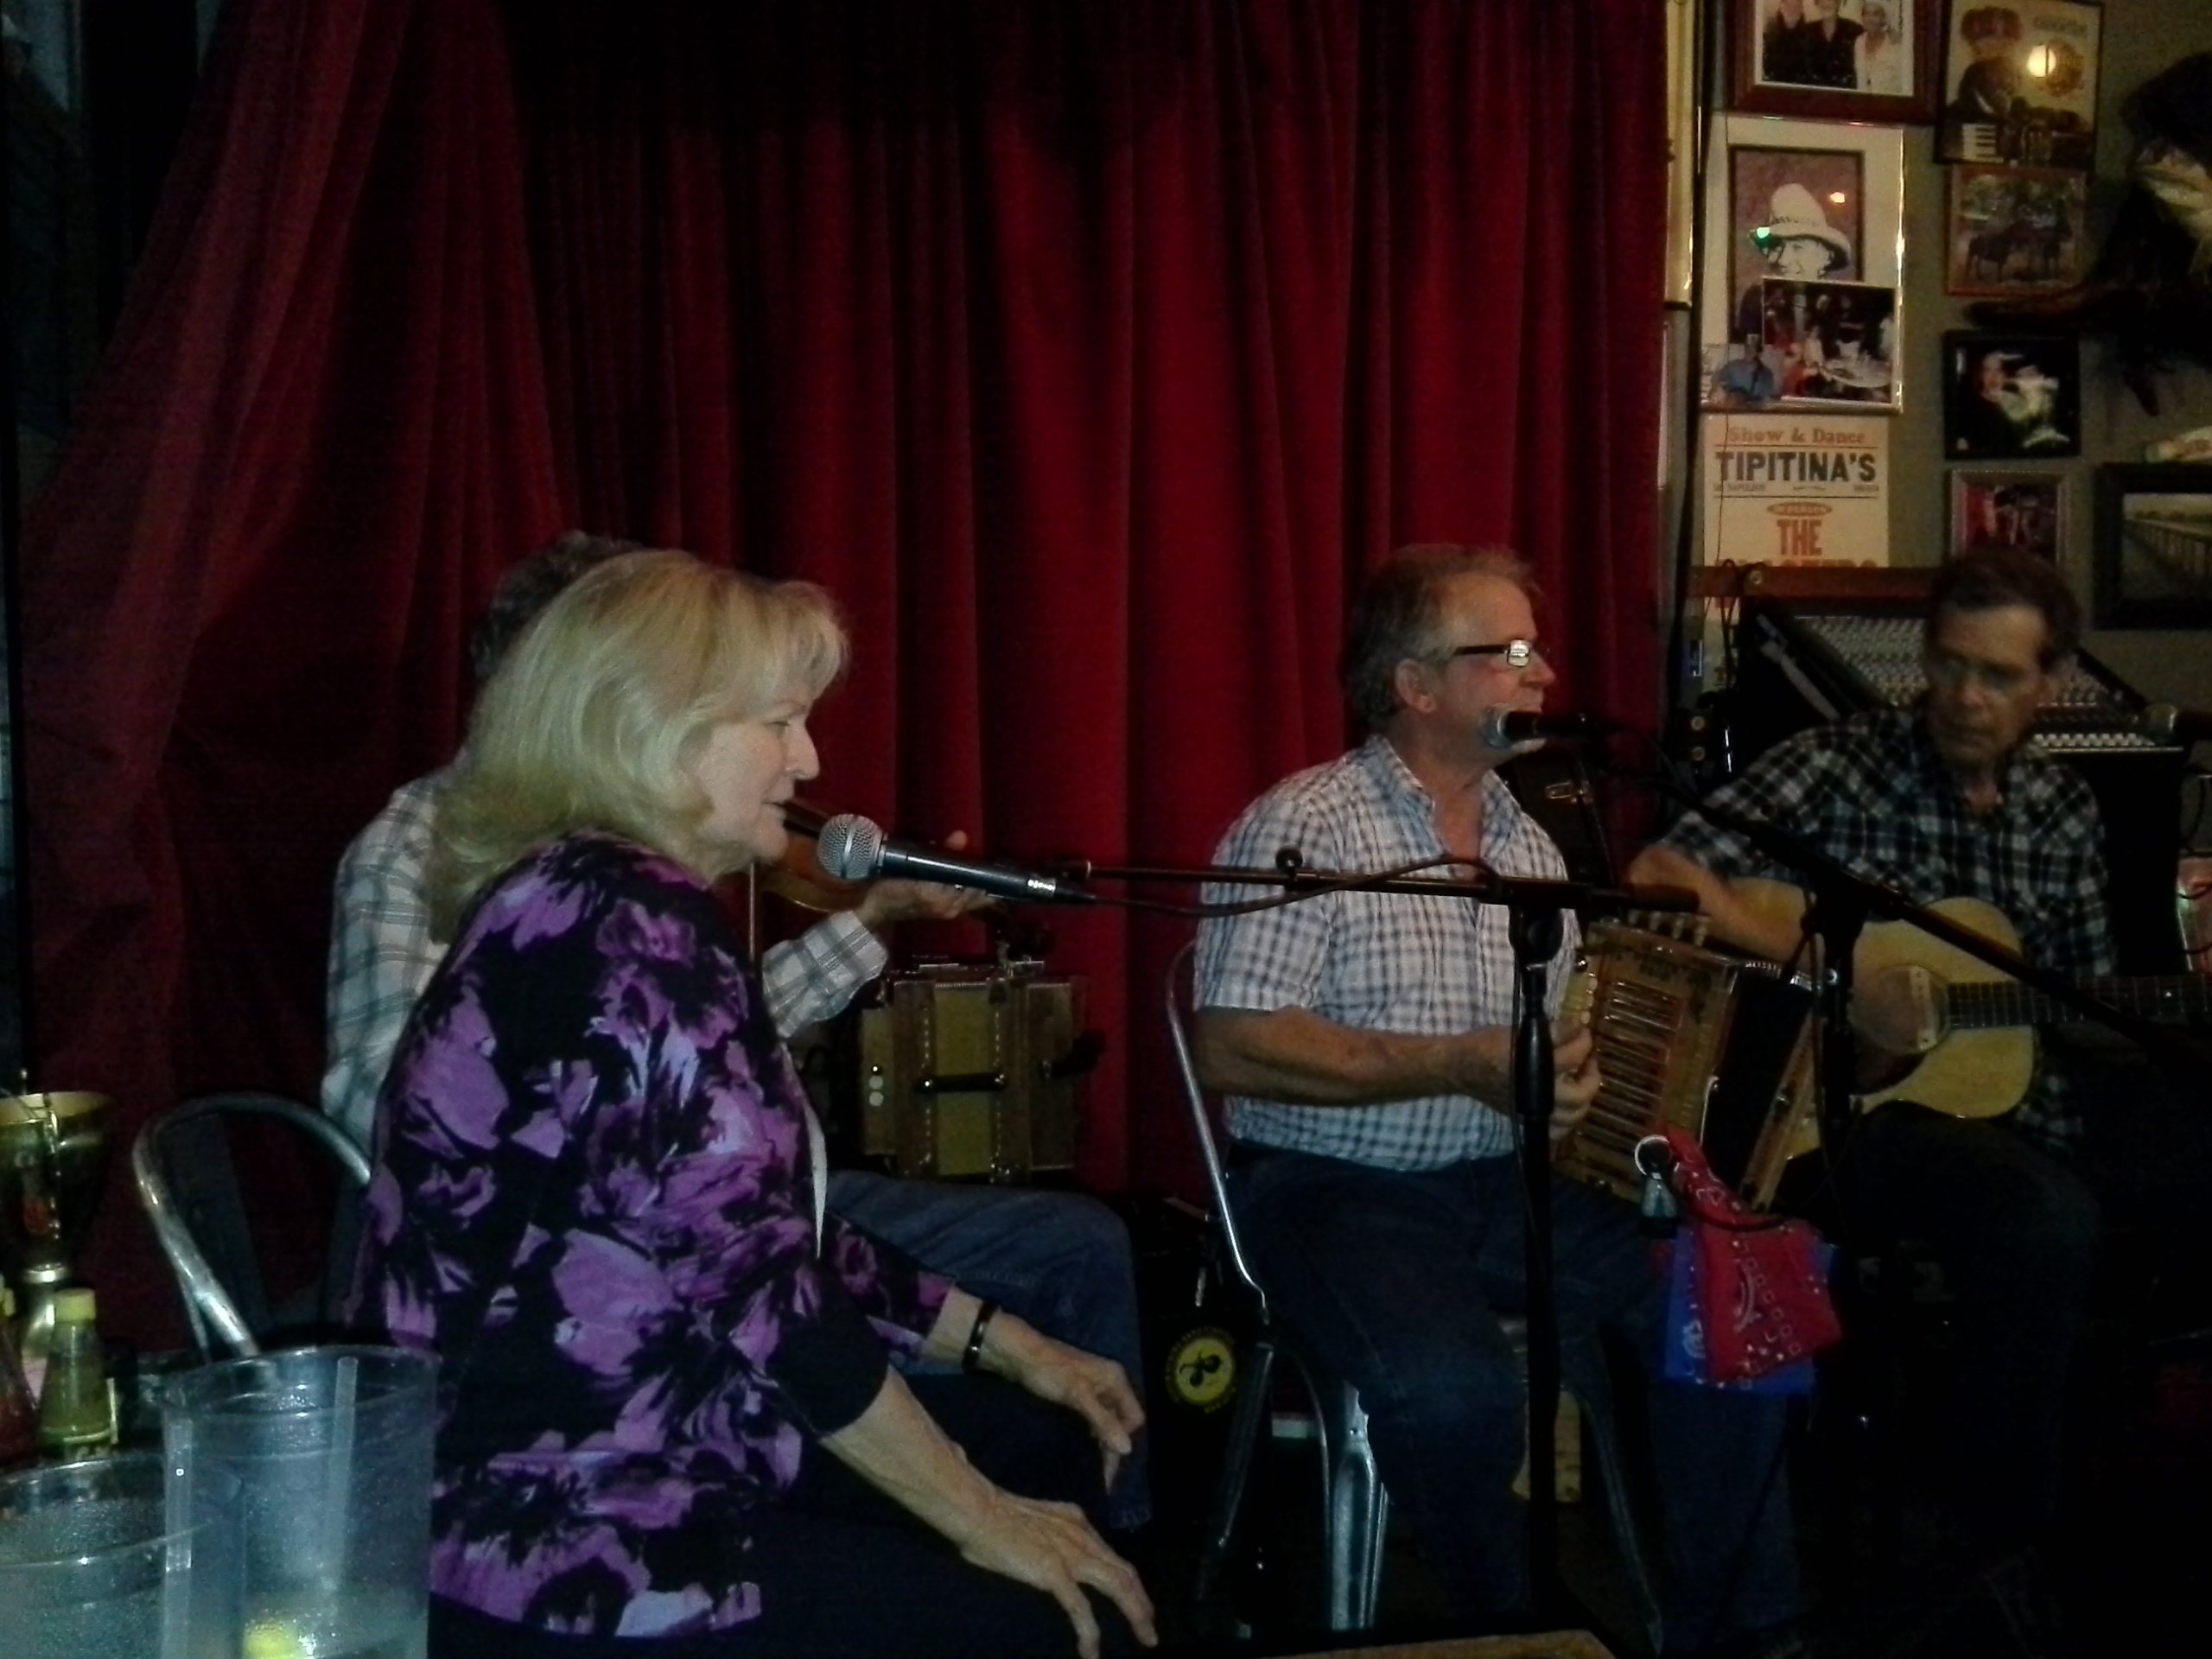 Jesse Lege on Accordion and Ginny Hawker on vocals with Tracy Schwarz on fiddle at Evangeline Café